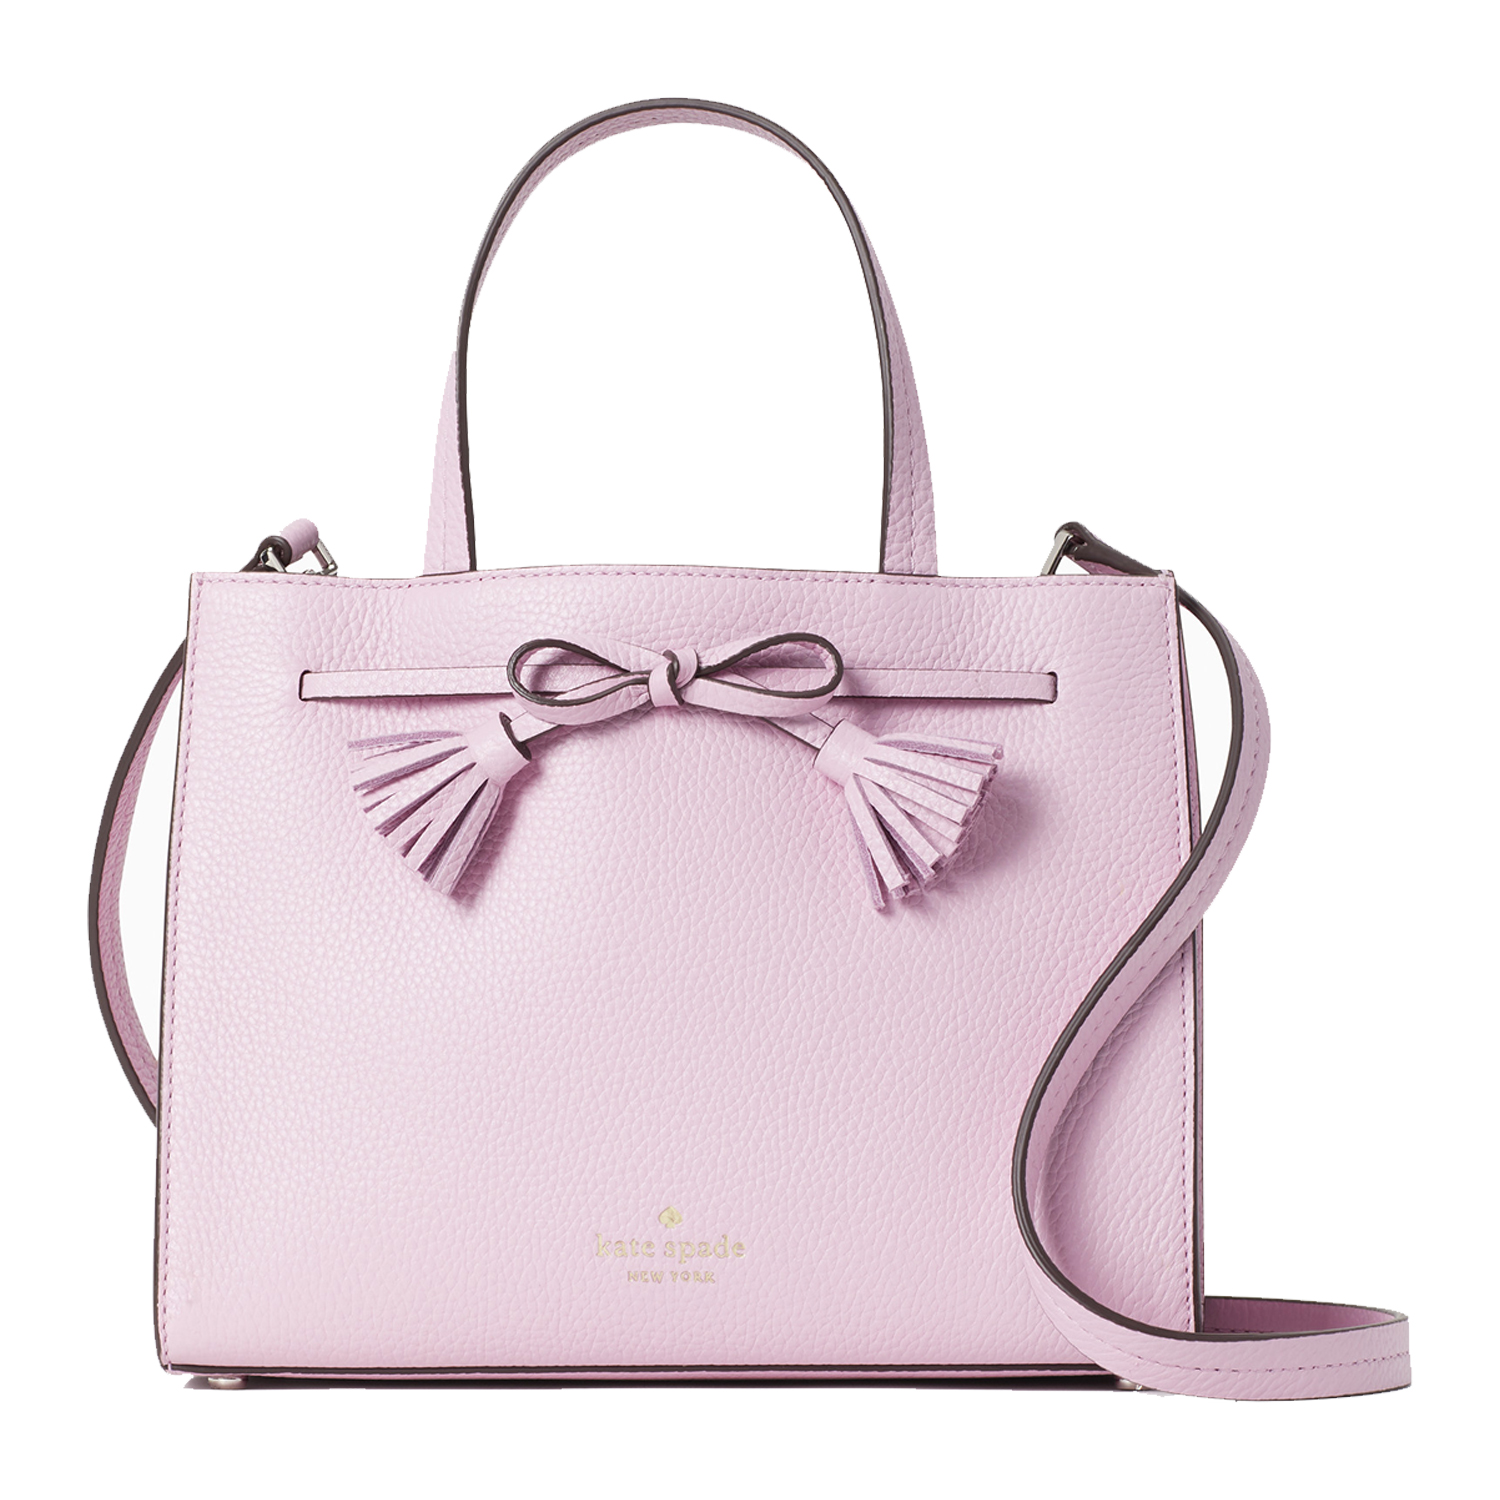 pink hayes small satchel from kate spade